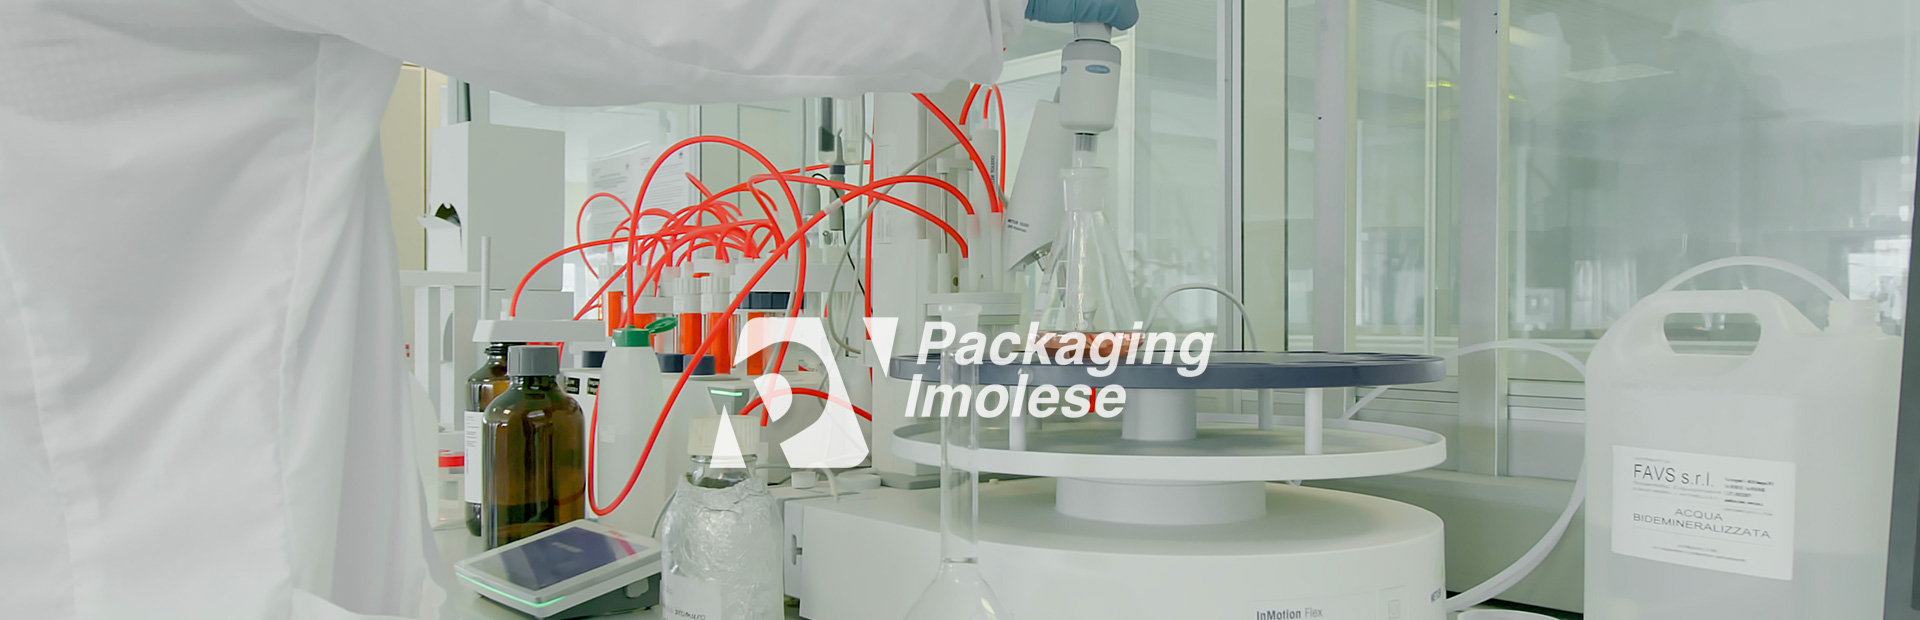 Packaging Imolese qualità